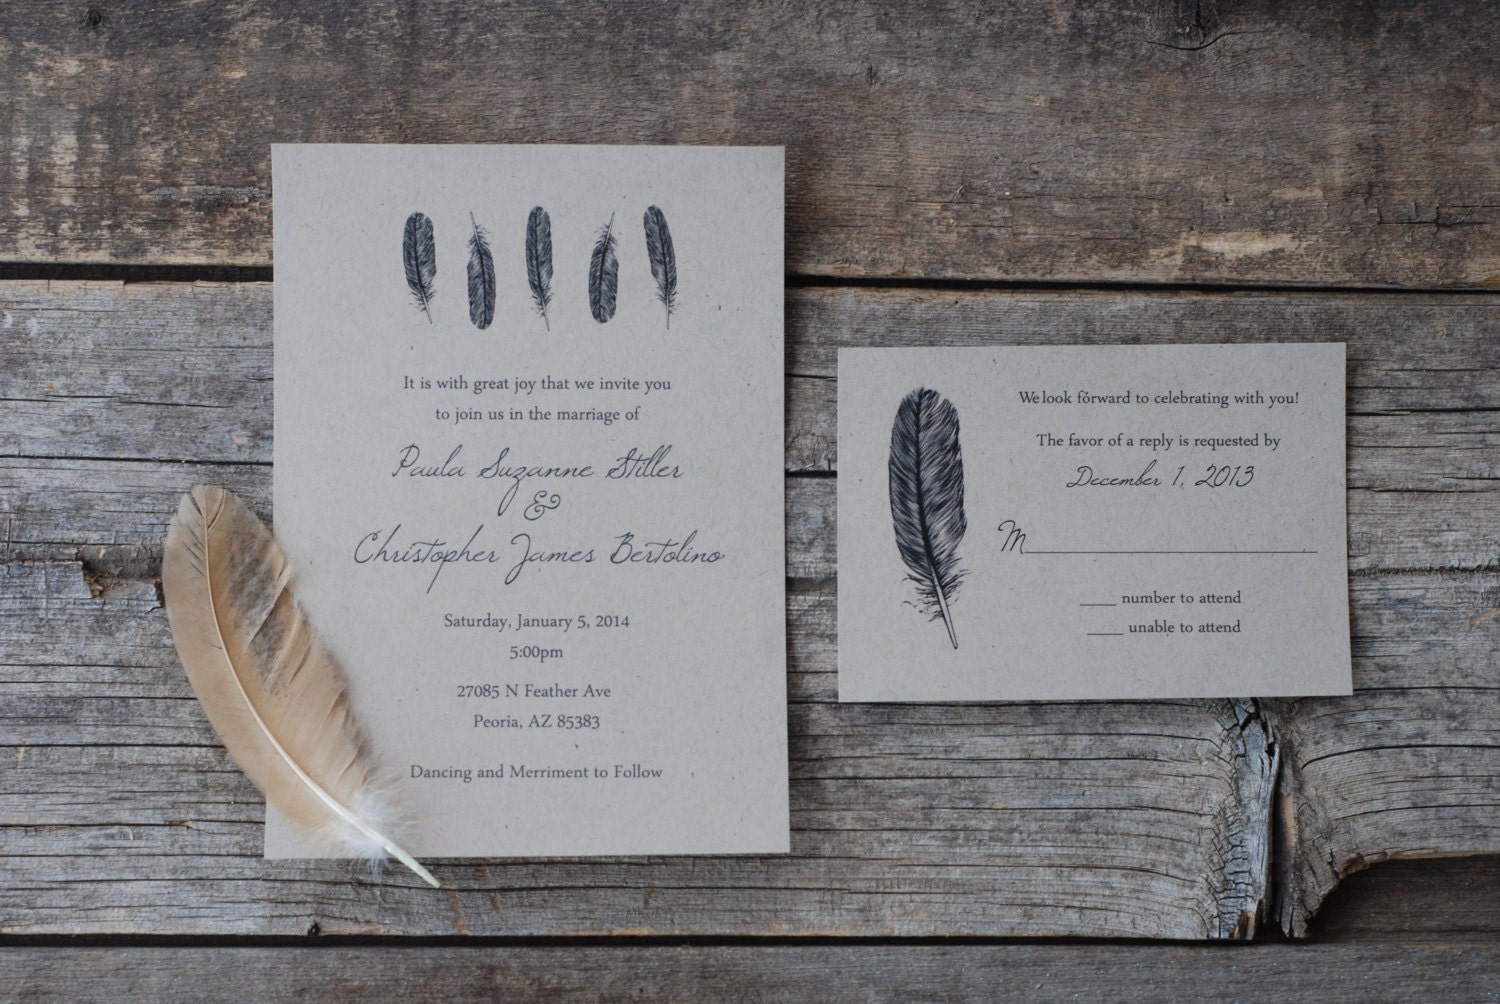 Chic Wedding Invites for great invitation sample